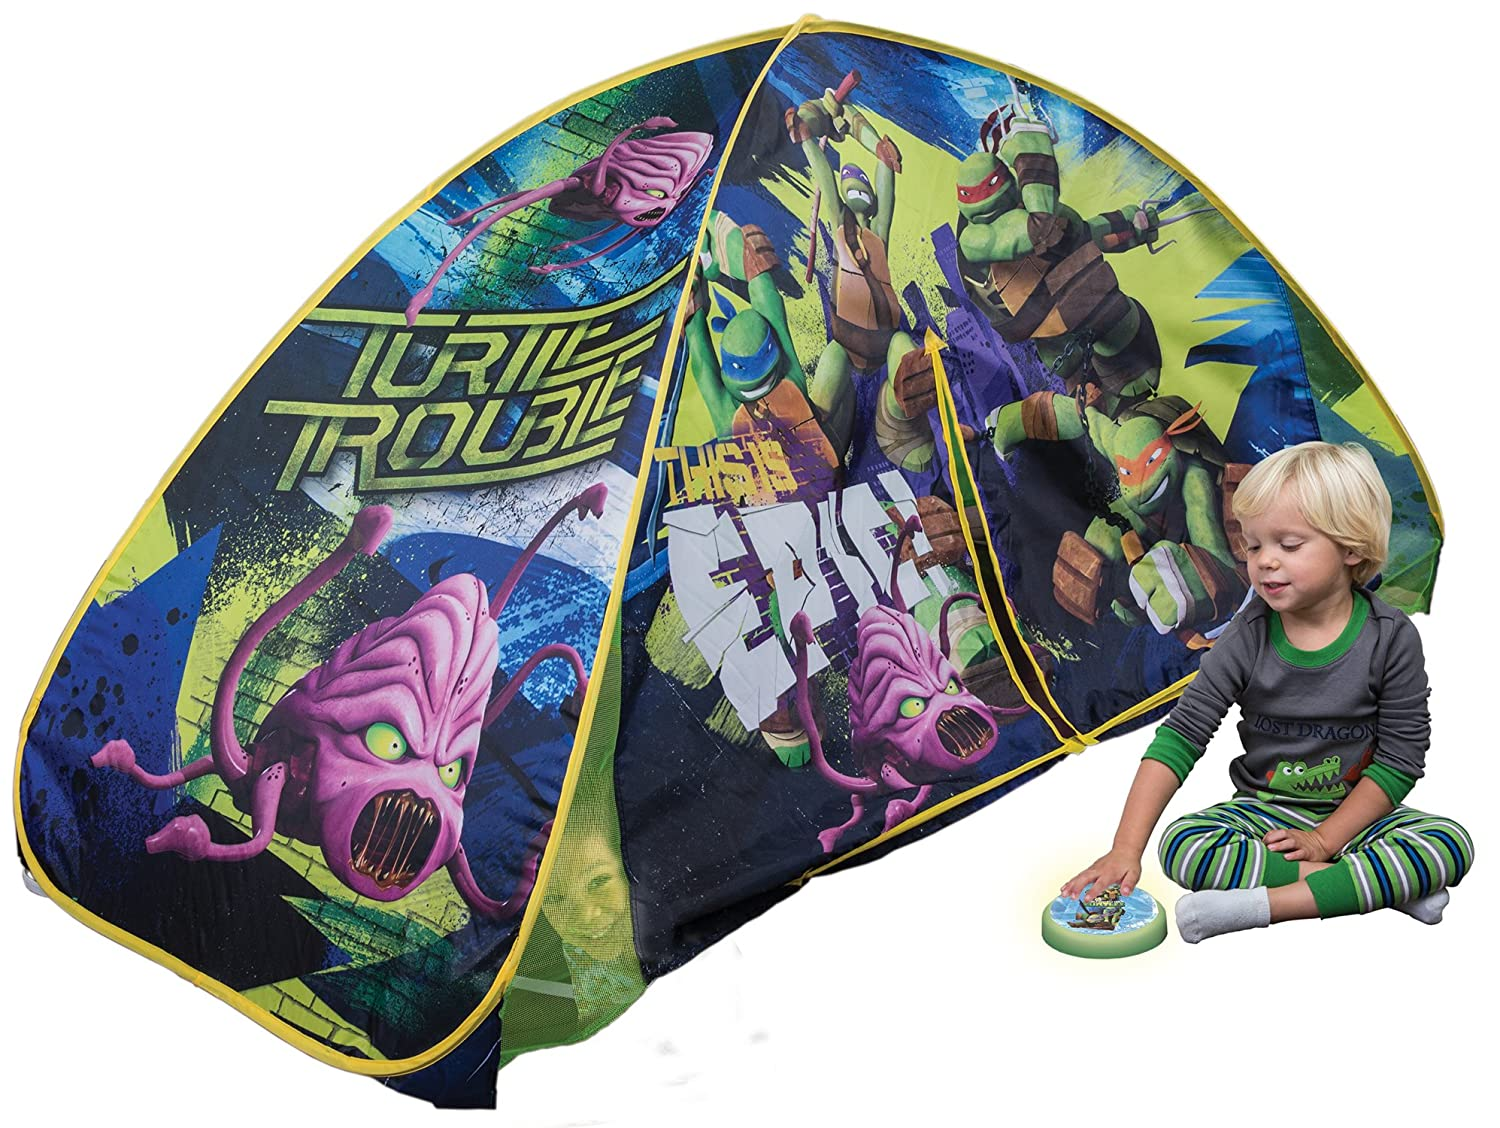 Playhut Teenage Mutant Ninja Turtles Light Up Tent Amazon.co.uk Toys u0026 Games  sc 1 st  Amazon UK & Playhut Teenage Mutant Ninja Turtles Light Up Tent: Amazon.co.uk ...